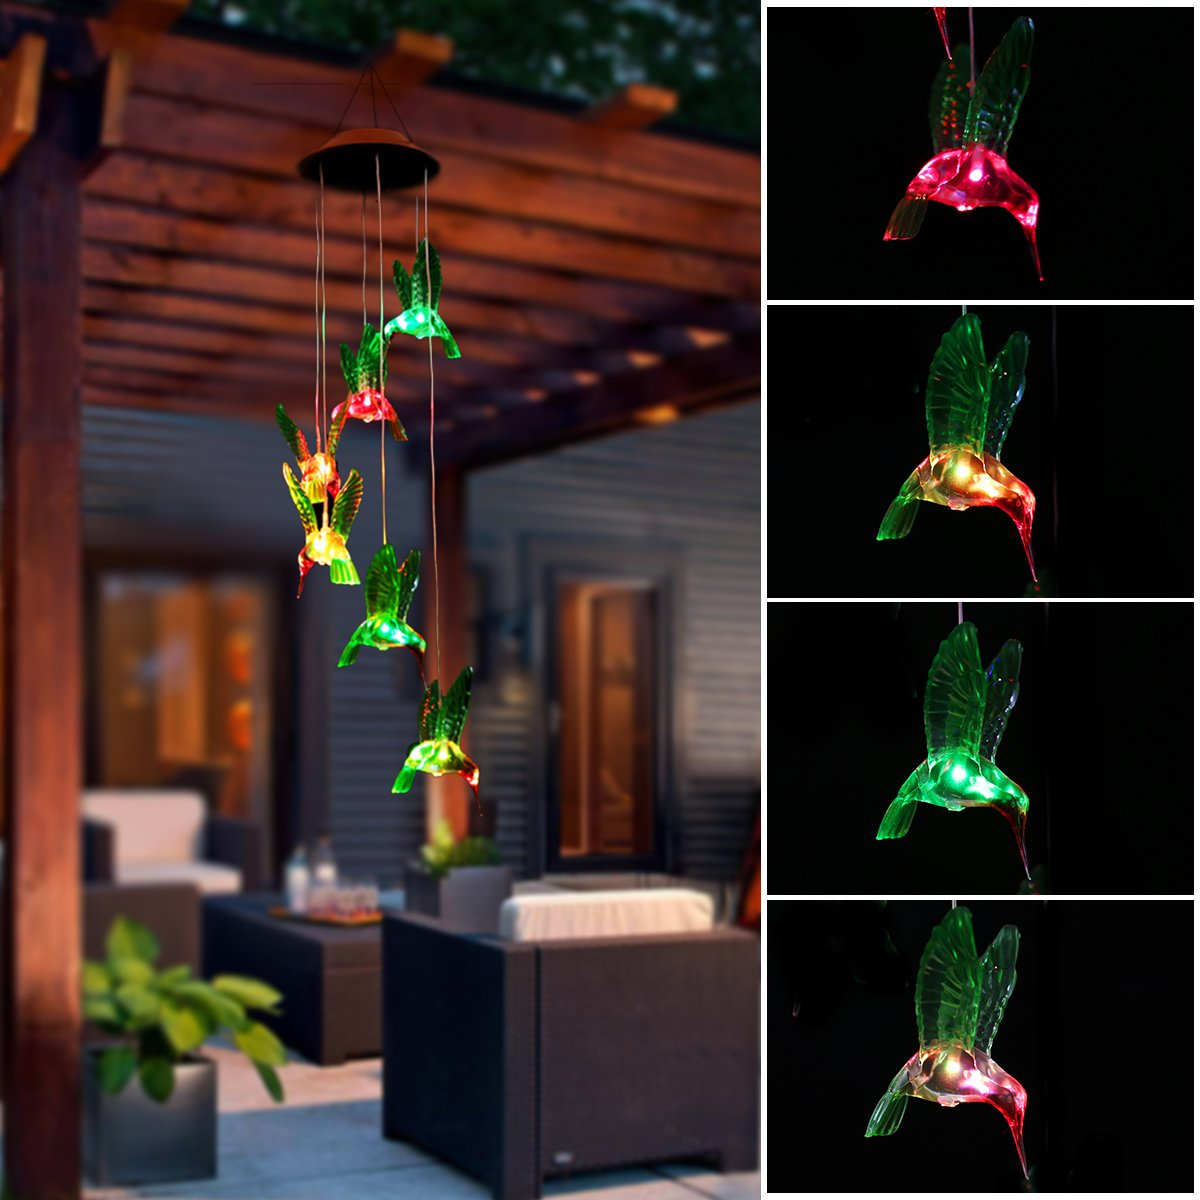 PATHONOR Upgraded Solar Wind Chime, Color-Changing Solar LED Mobile Wind Chime Waterproof Six Hummingbird Wind Chimes for Home/Party/ Night/Garden /Festival Decor/Valentines Gift